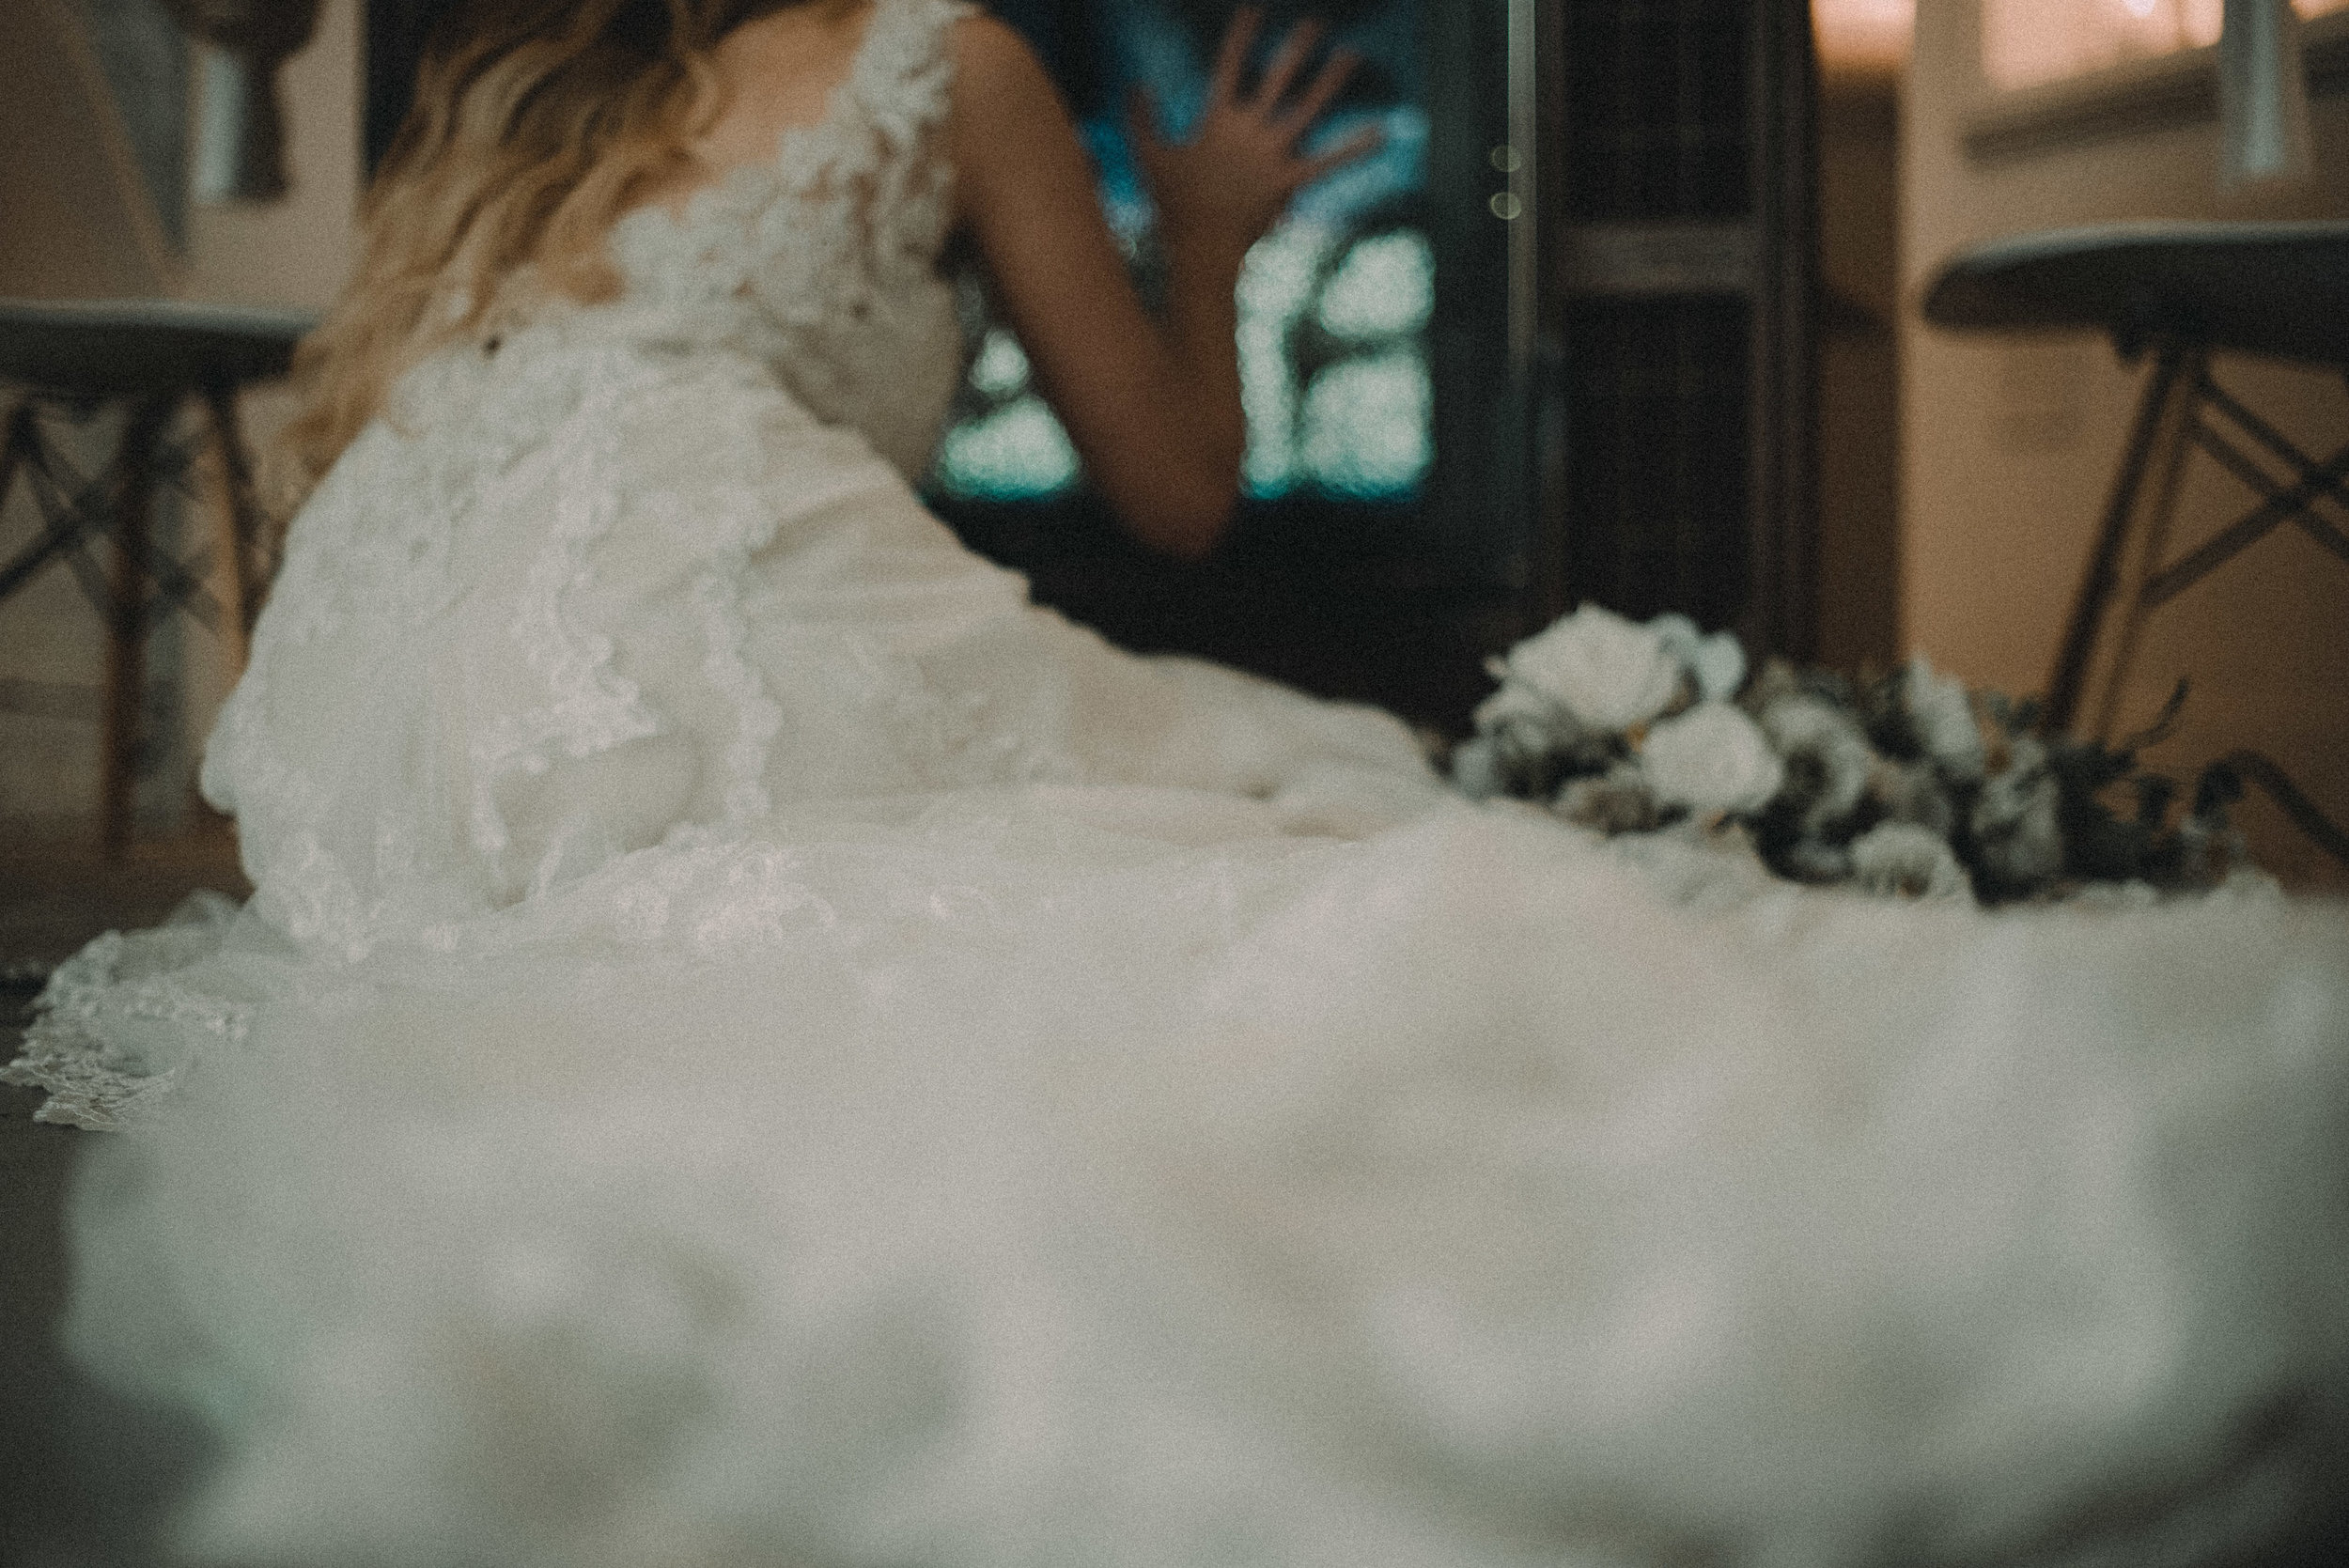 Bride lying on floor next to television